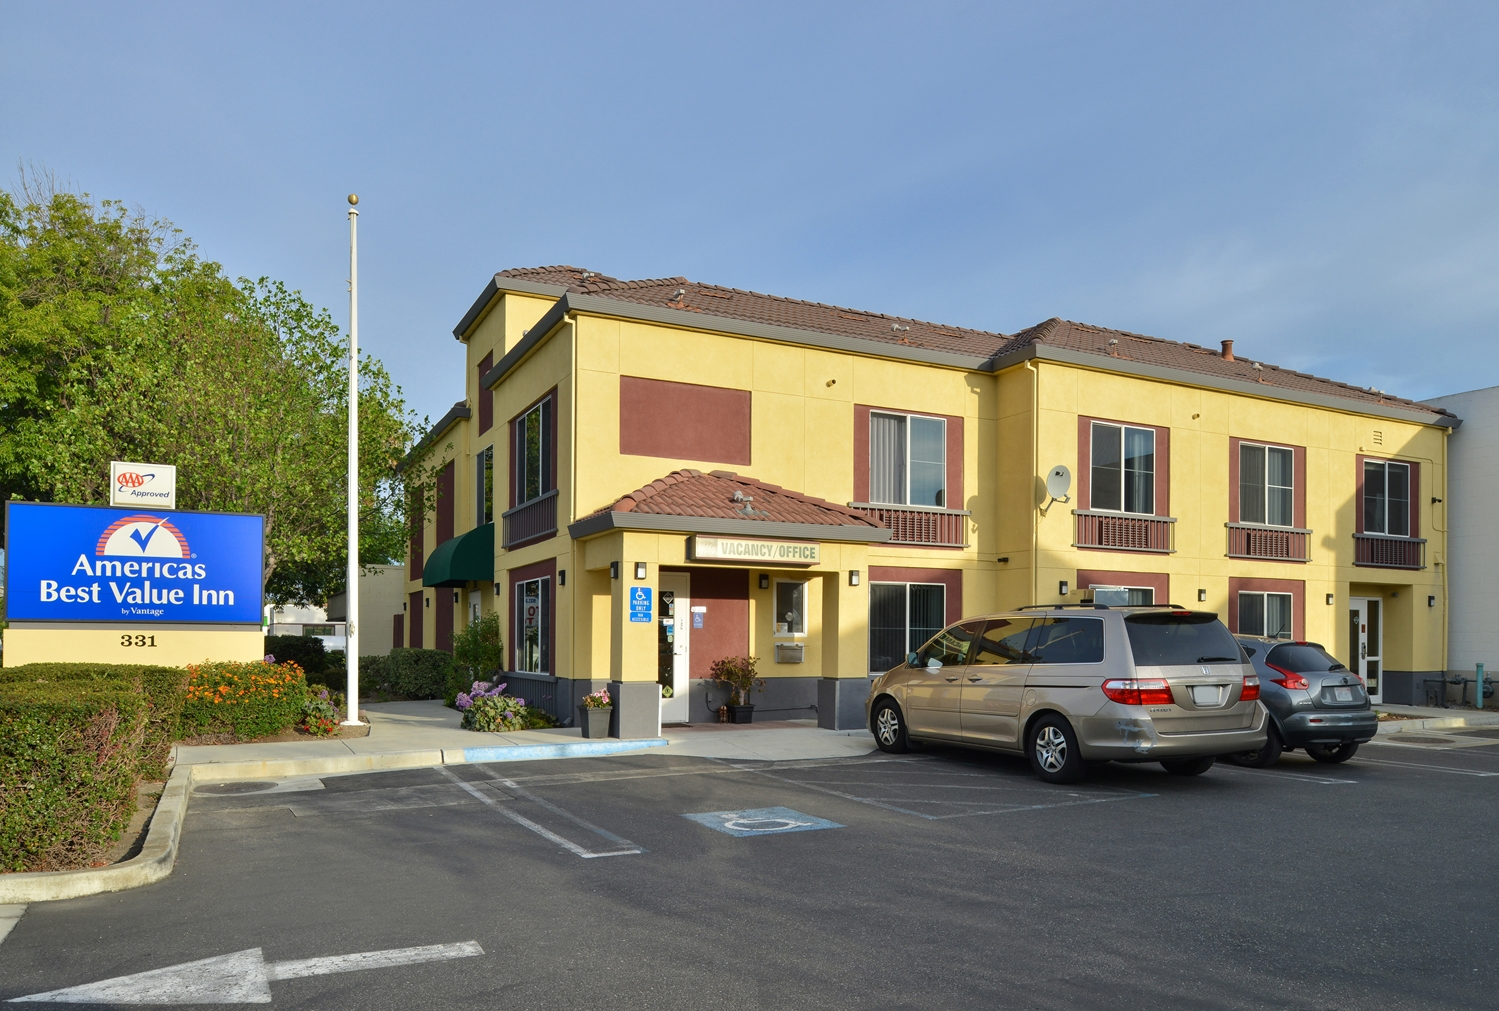 Americas Best Value Inn Sunnyvale Ca See Discounts